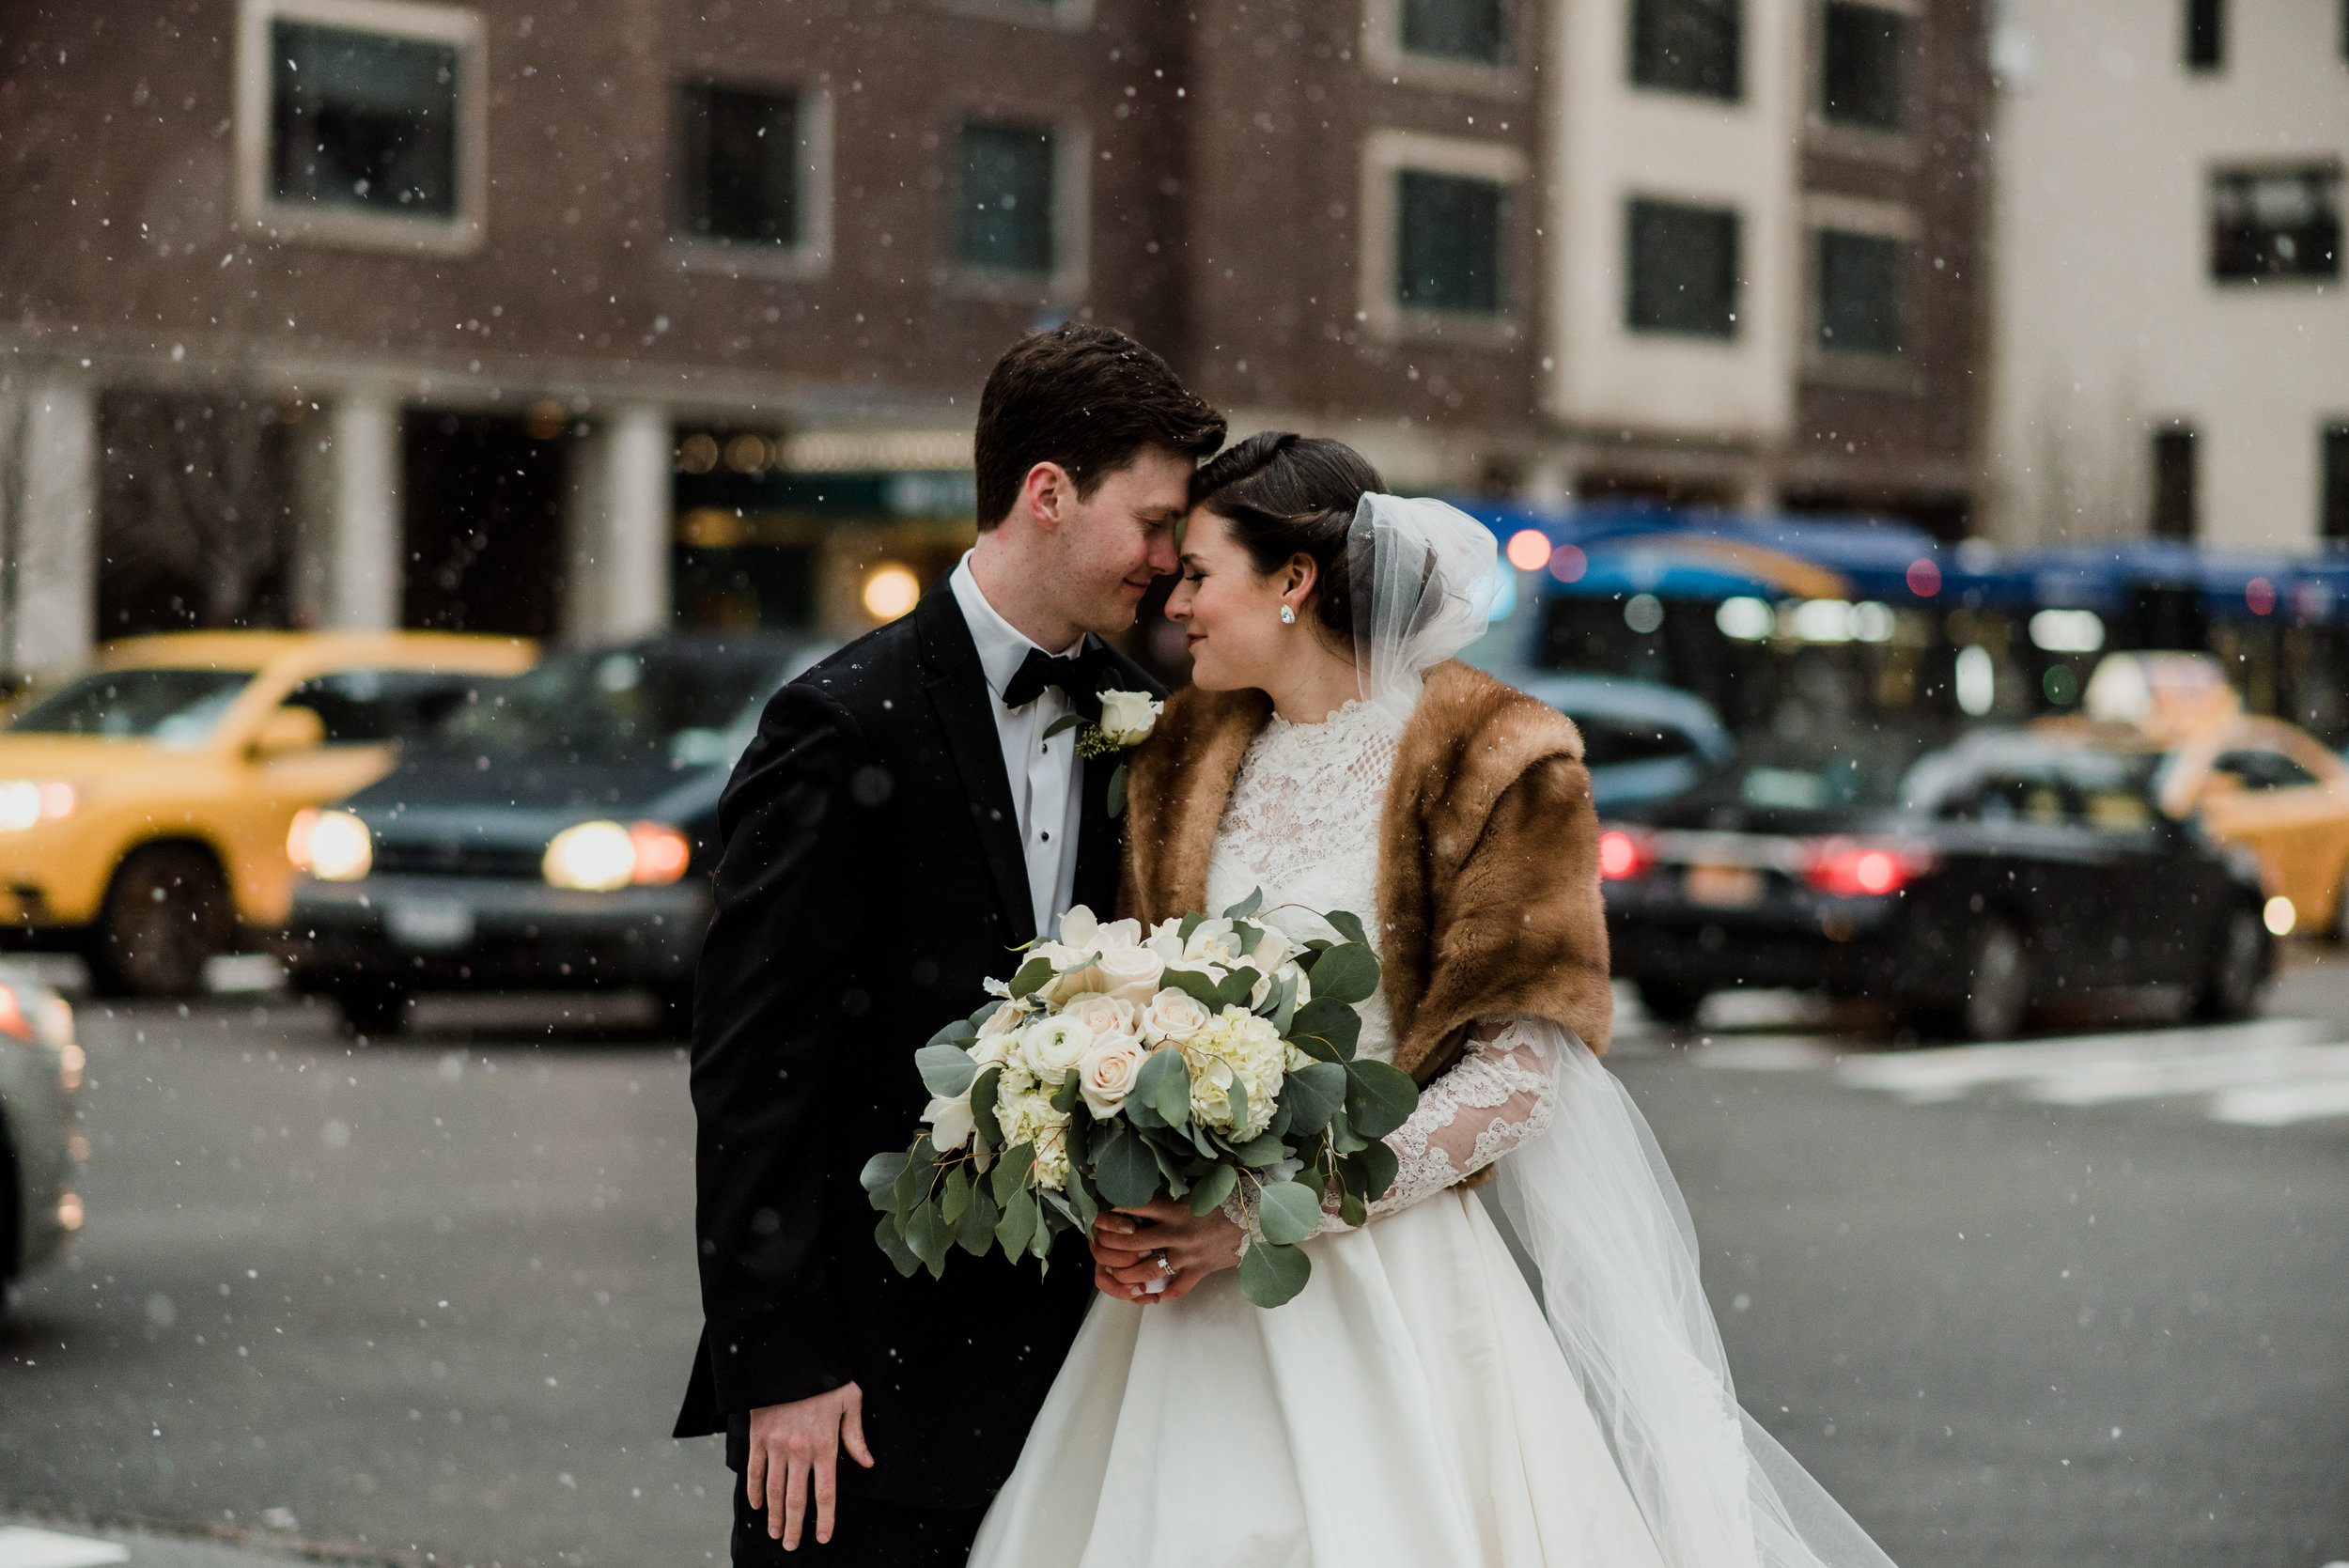 manhattanwinterweddingblog-53.jpg